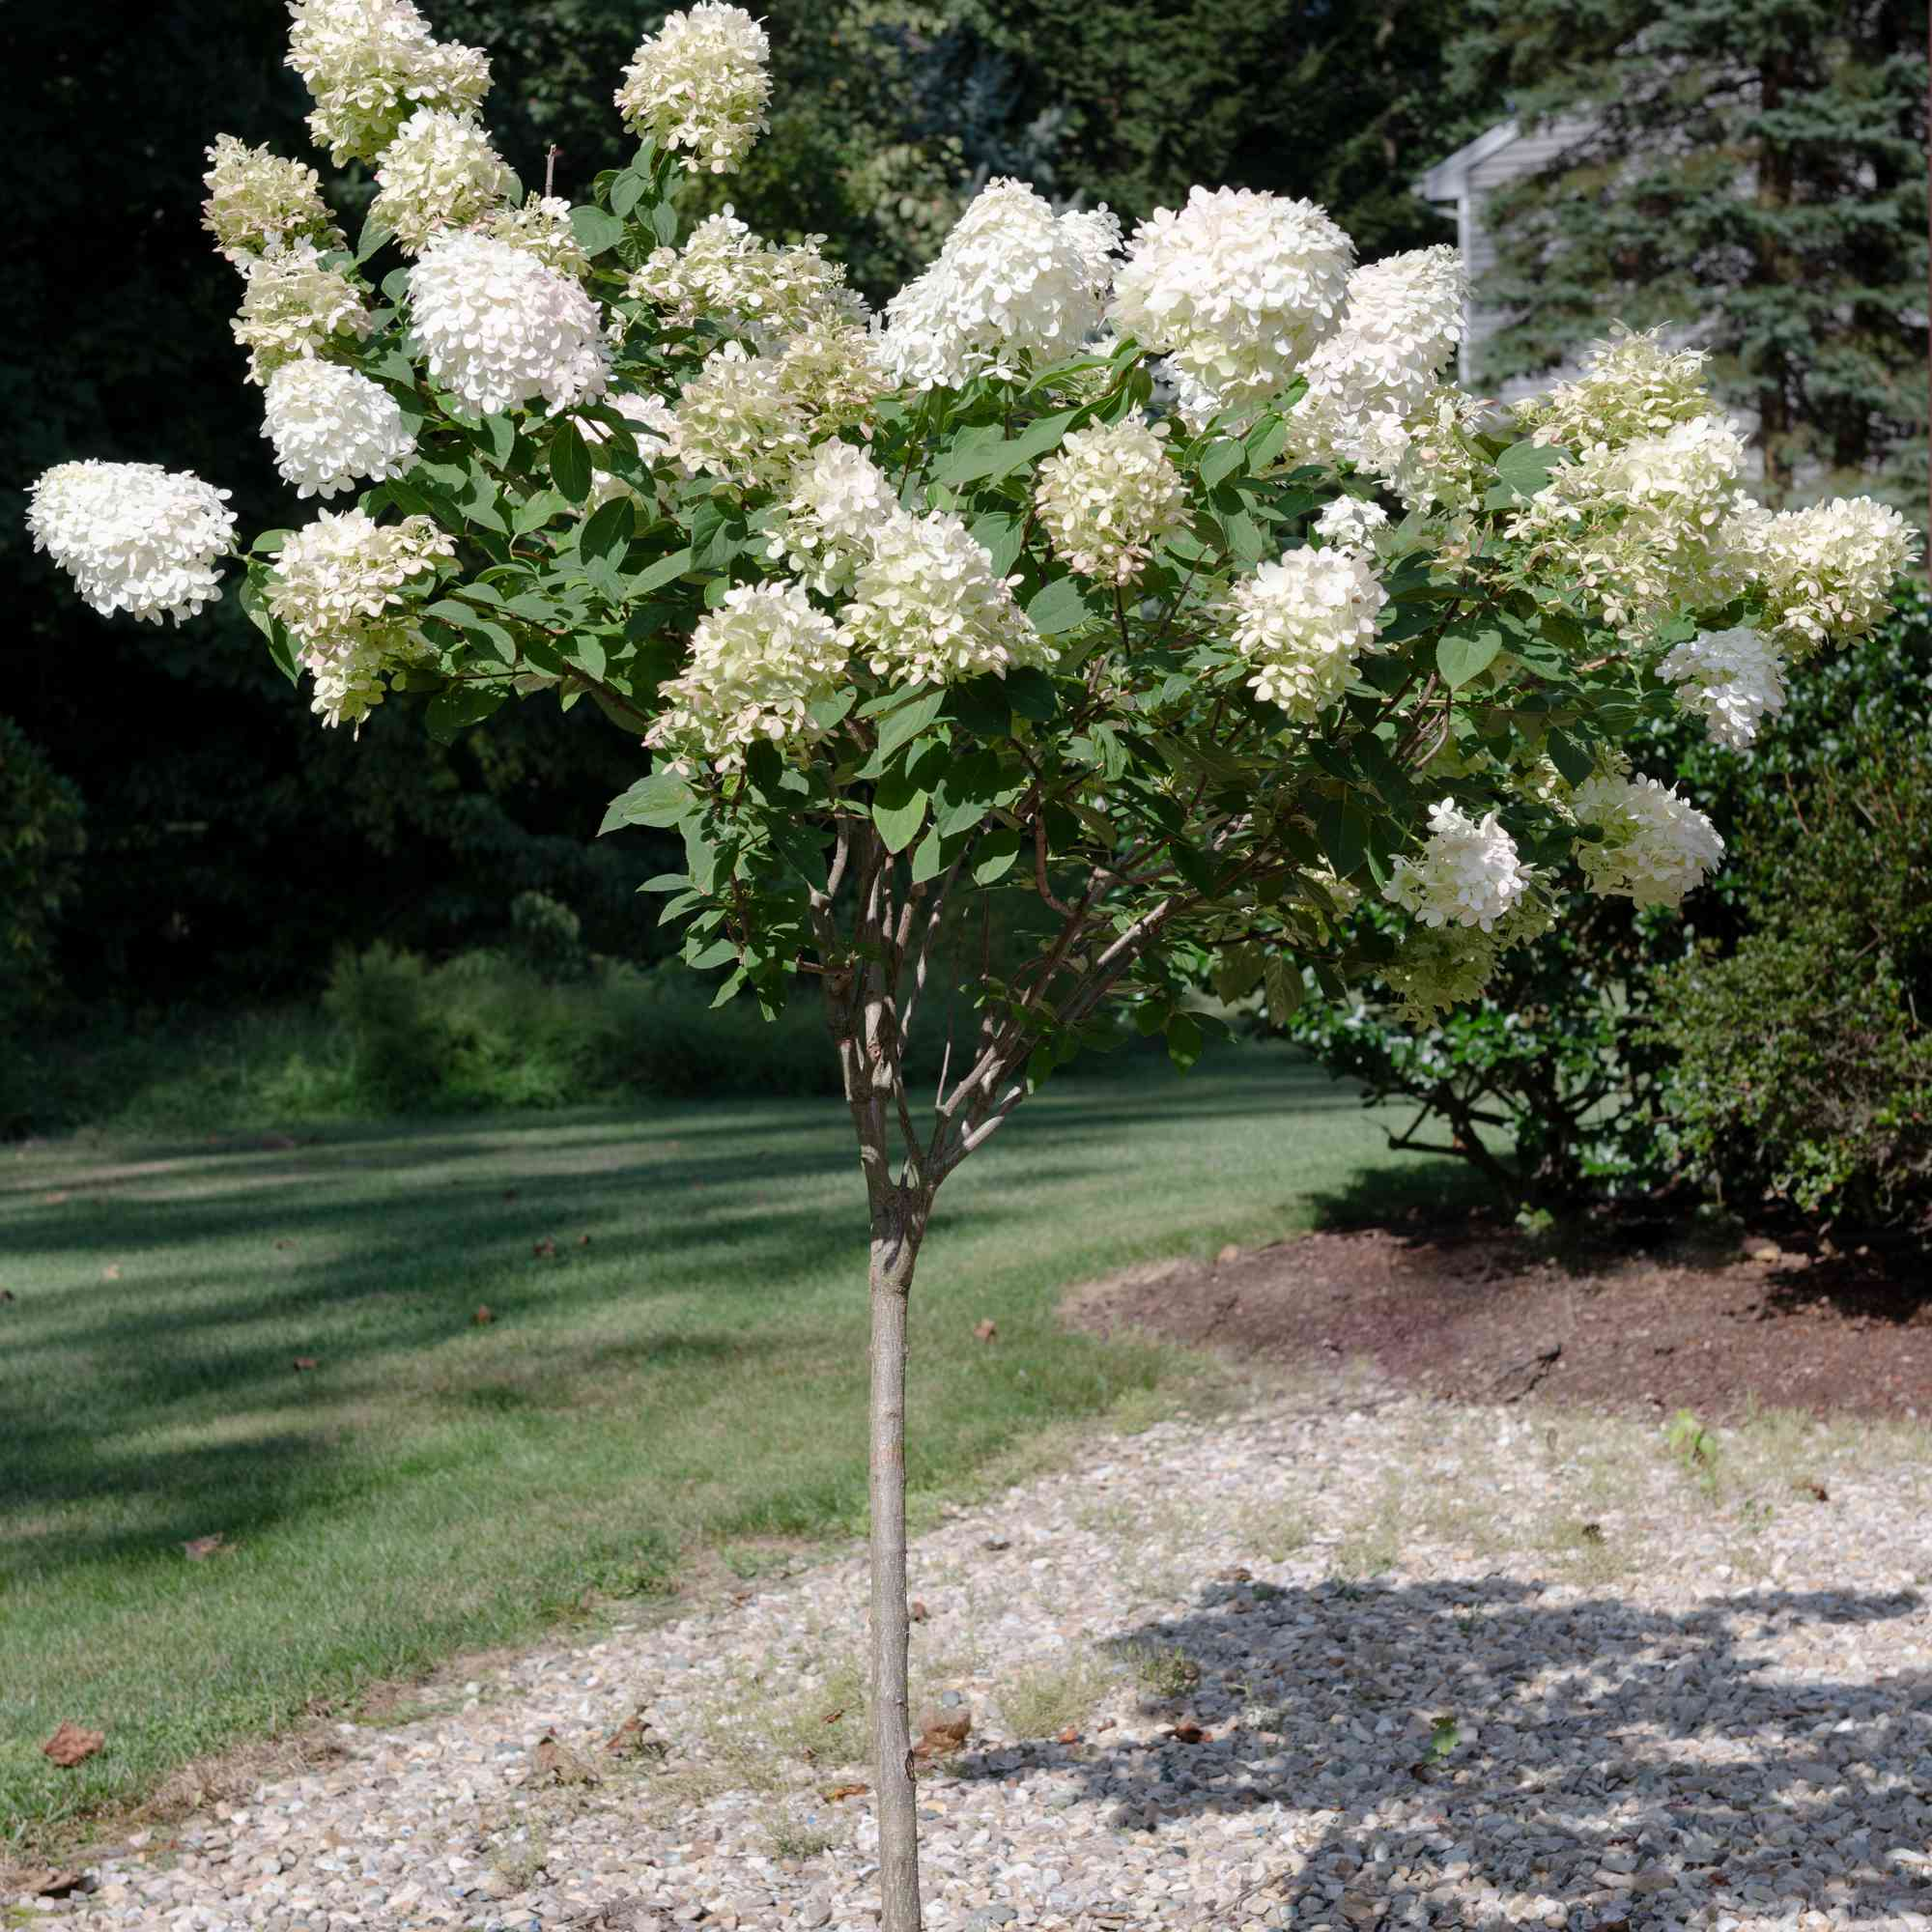 PeeGee hydrangea with white and cream blooms